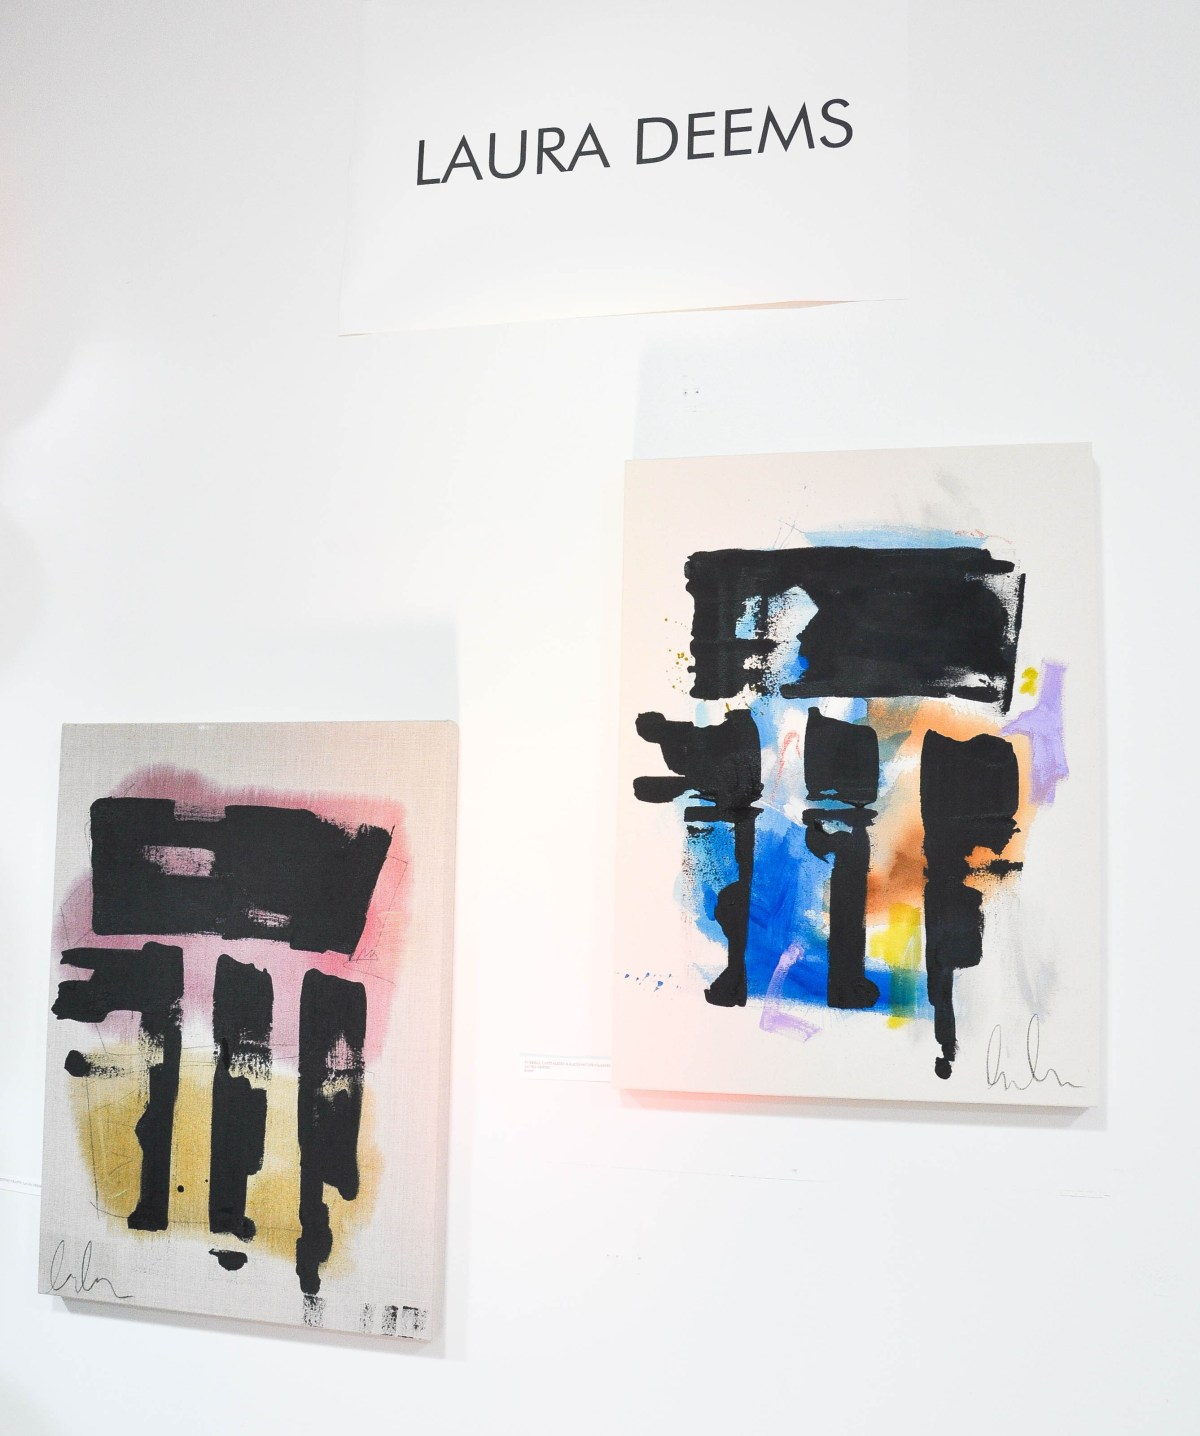 Two small abstract paintings by Laura Deems hang on white walls at a gallery exhibition.